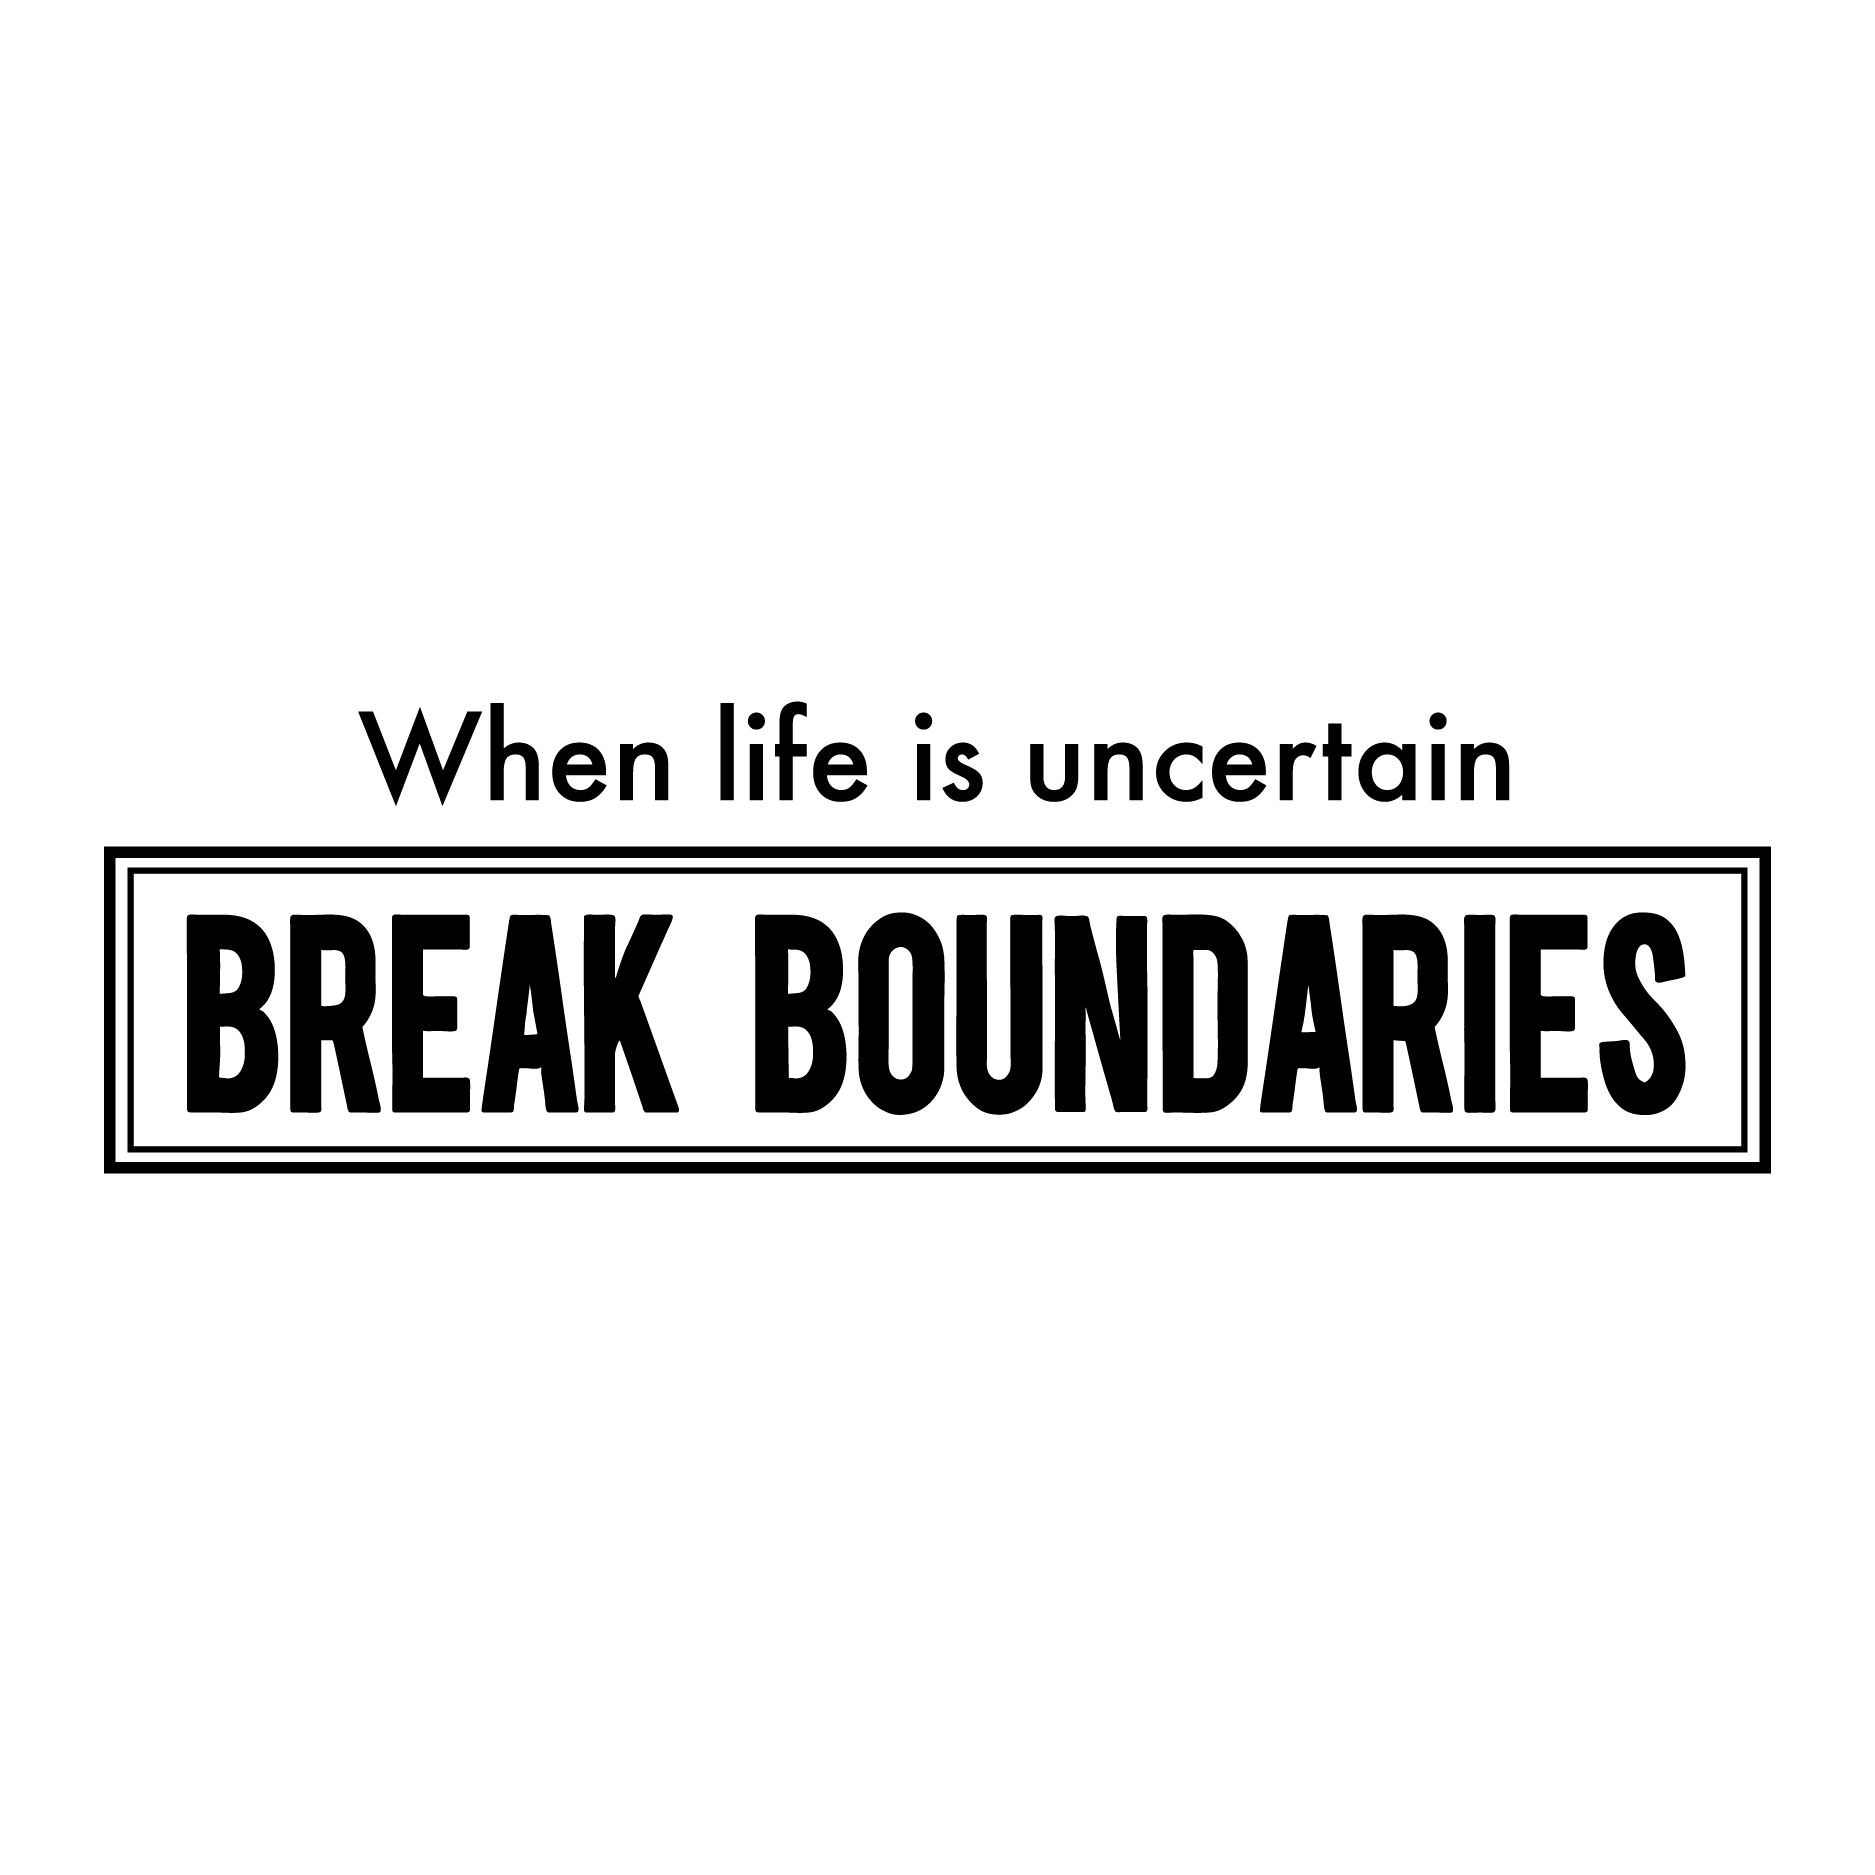 Break Boundaries Wall Quotes Decal Wallquotes Com